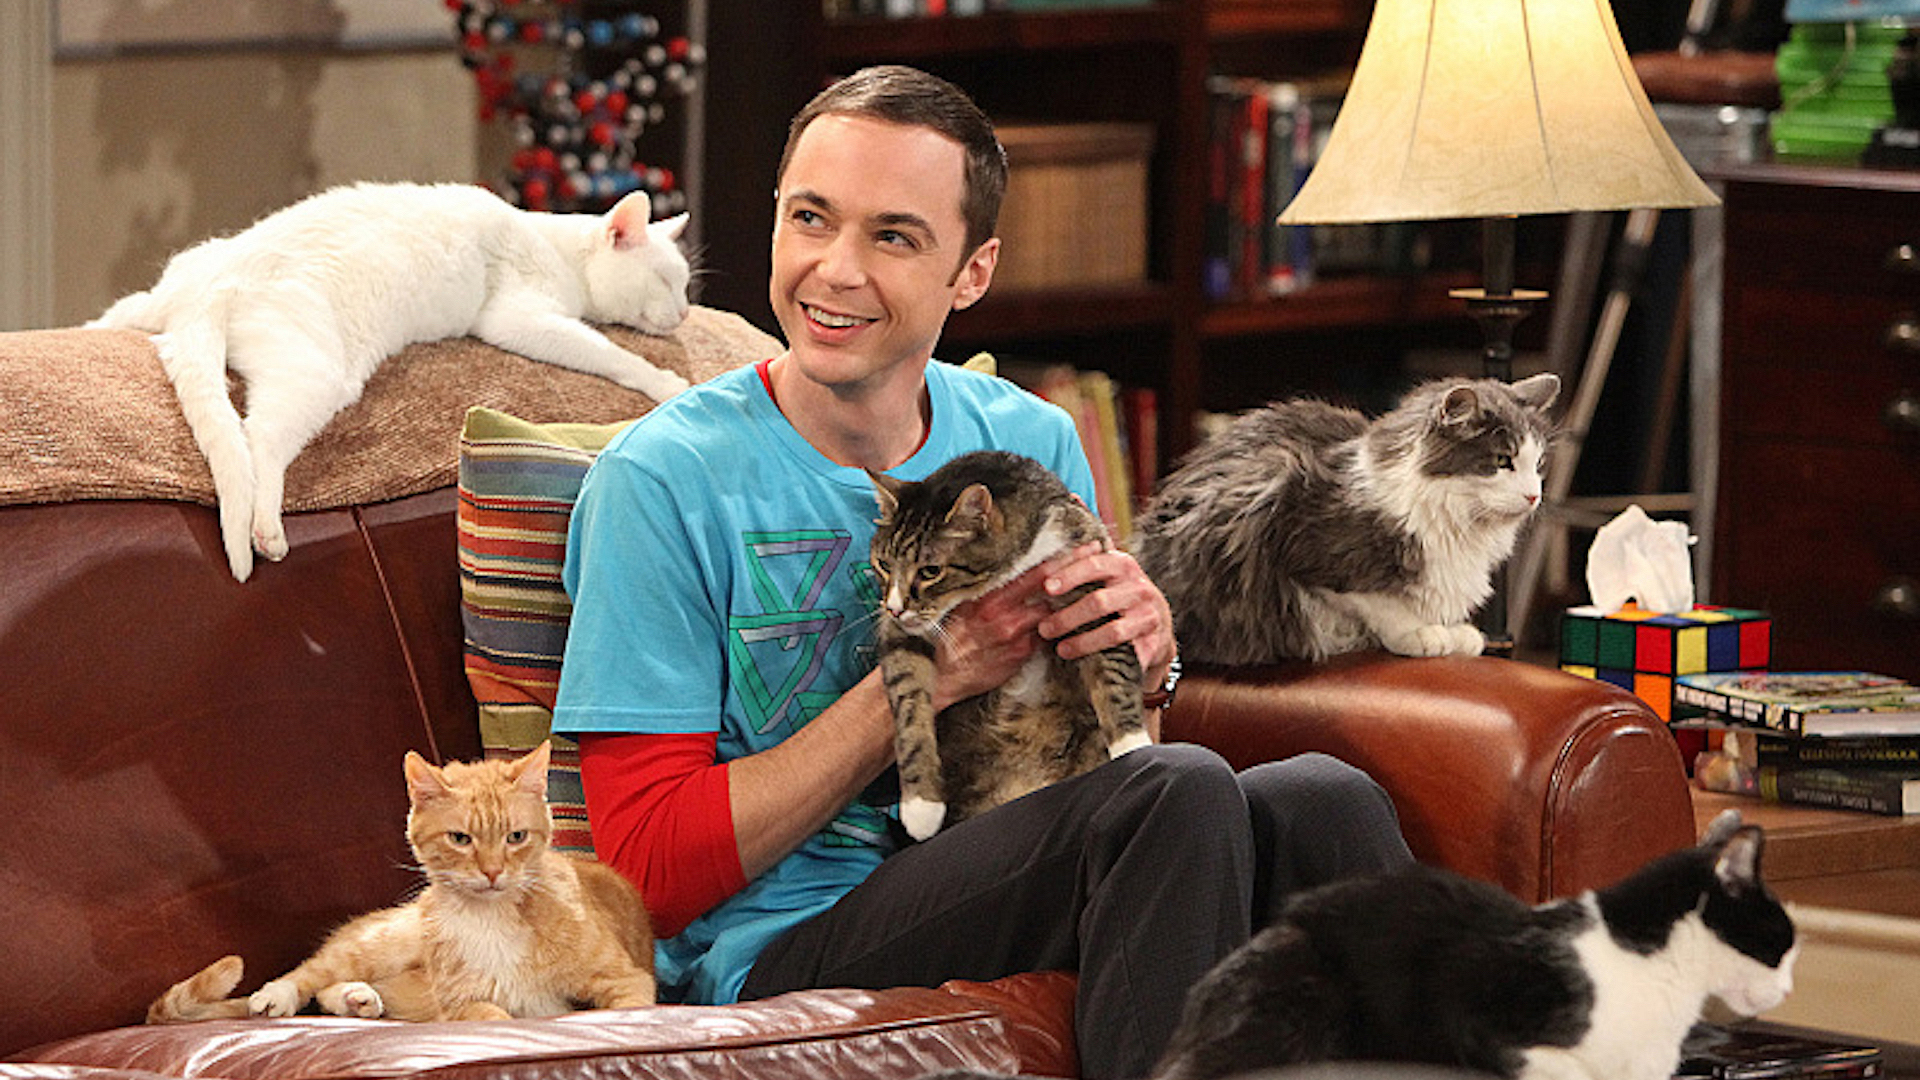 Though Sheldon is more of a cat person, Jim Parsons has two dogs.